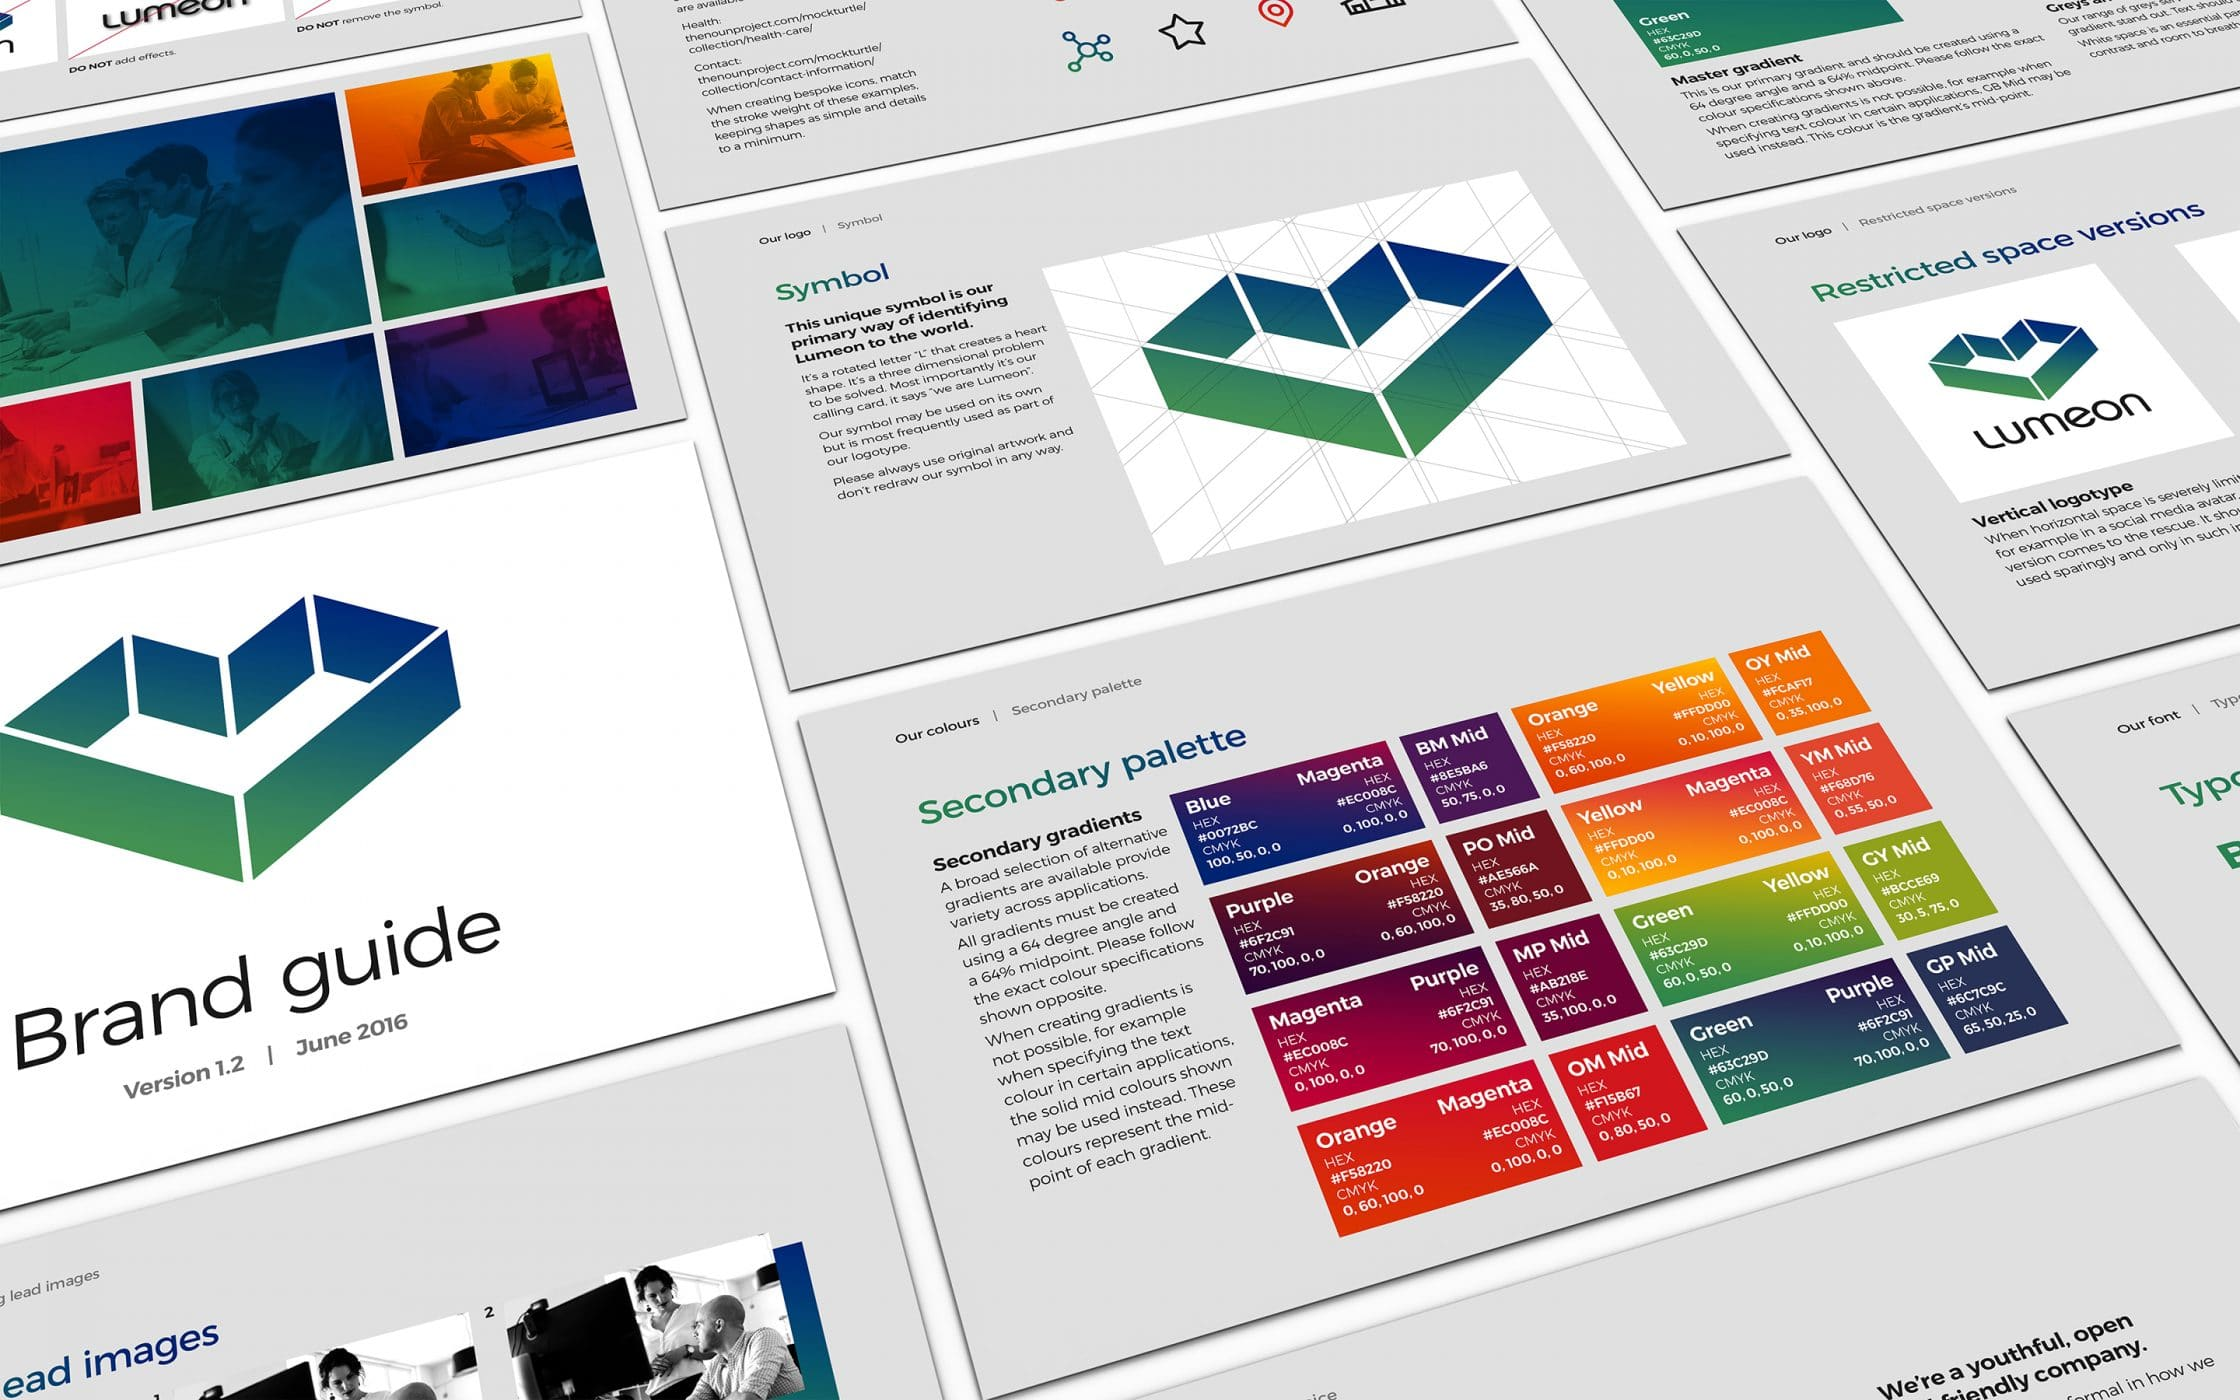 How To Create Brand Identity Guidelines That Boost Communications